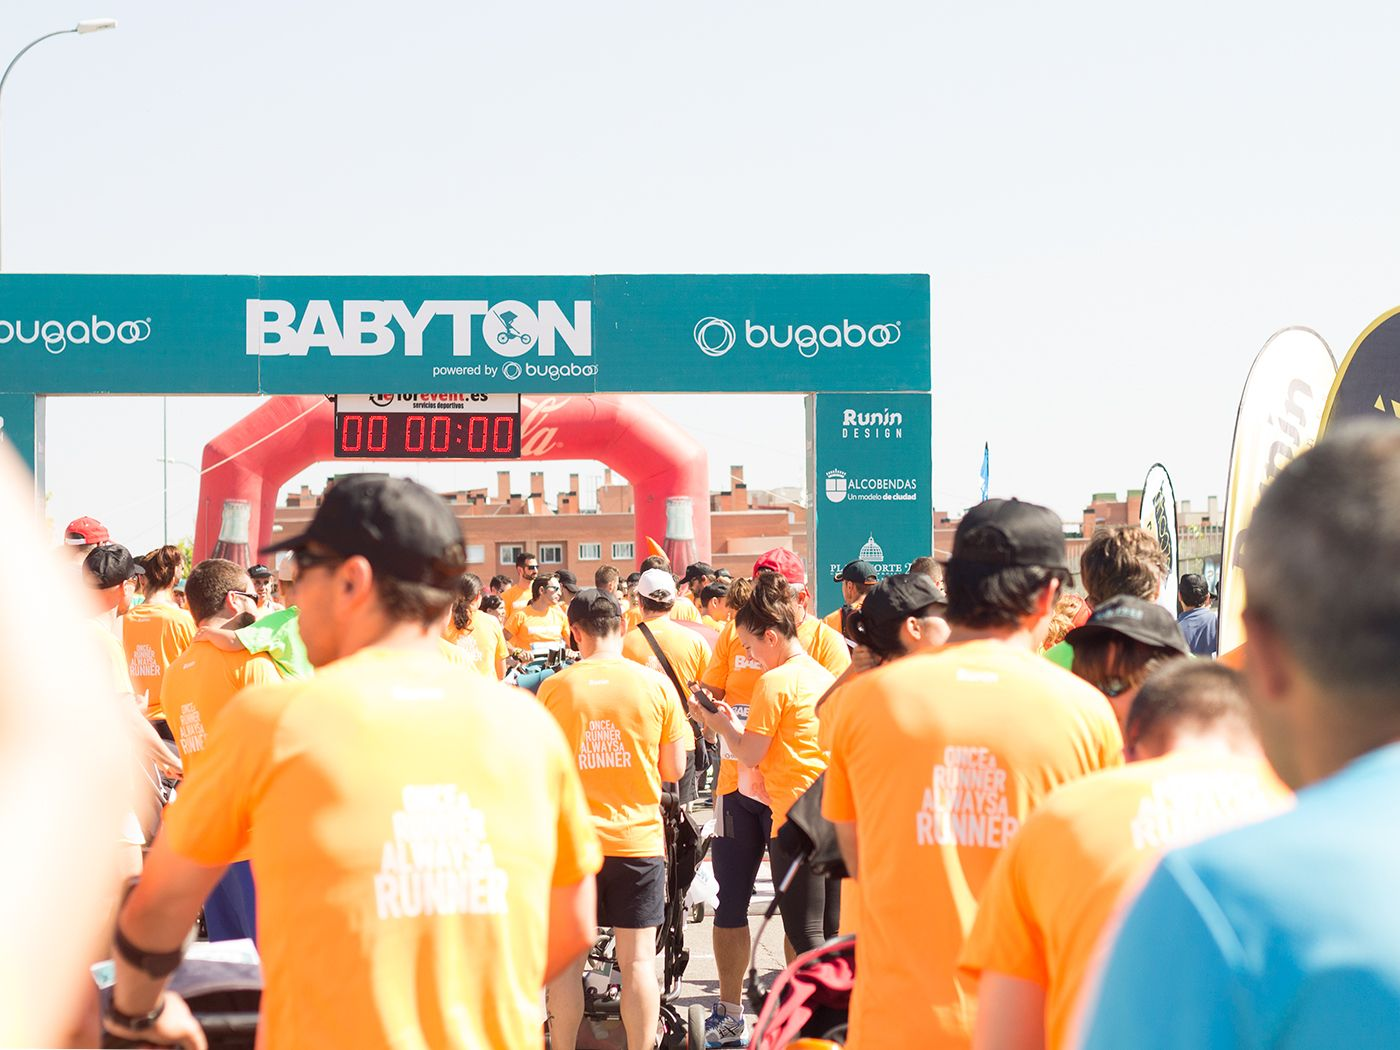 Babyton, carrera familiar con carritos en Alcobendas